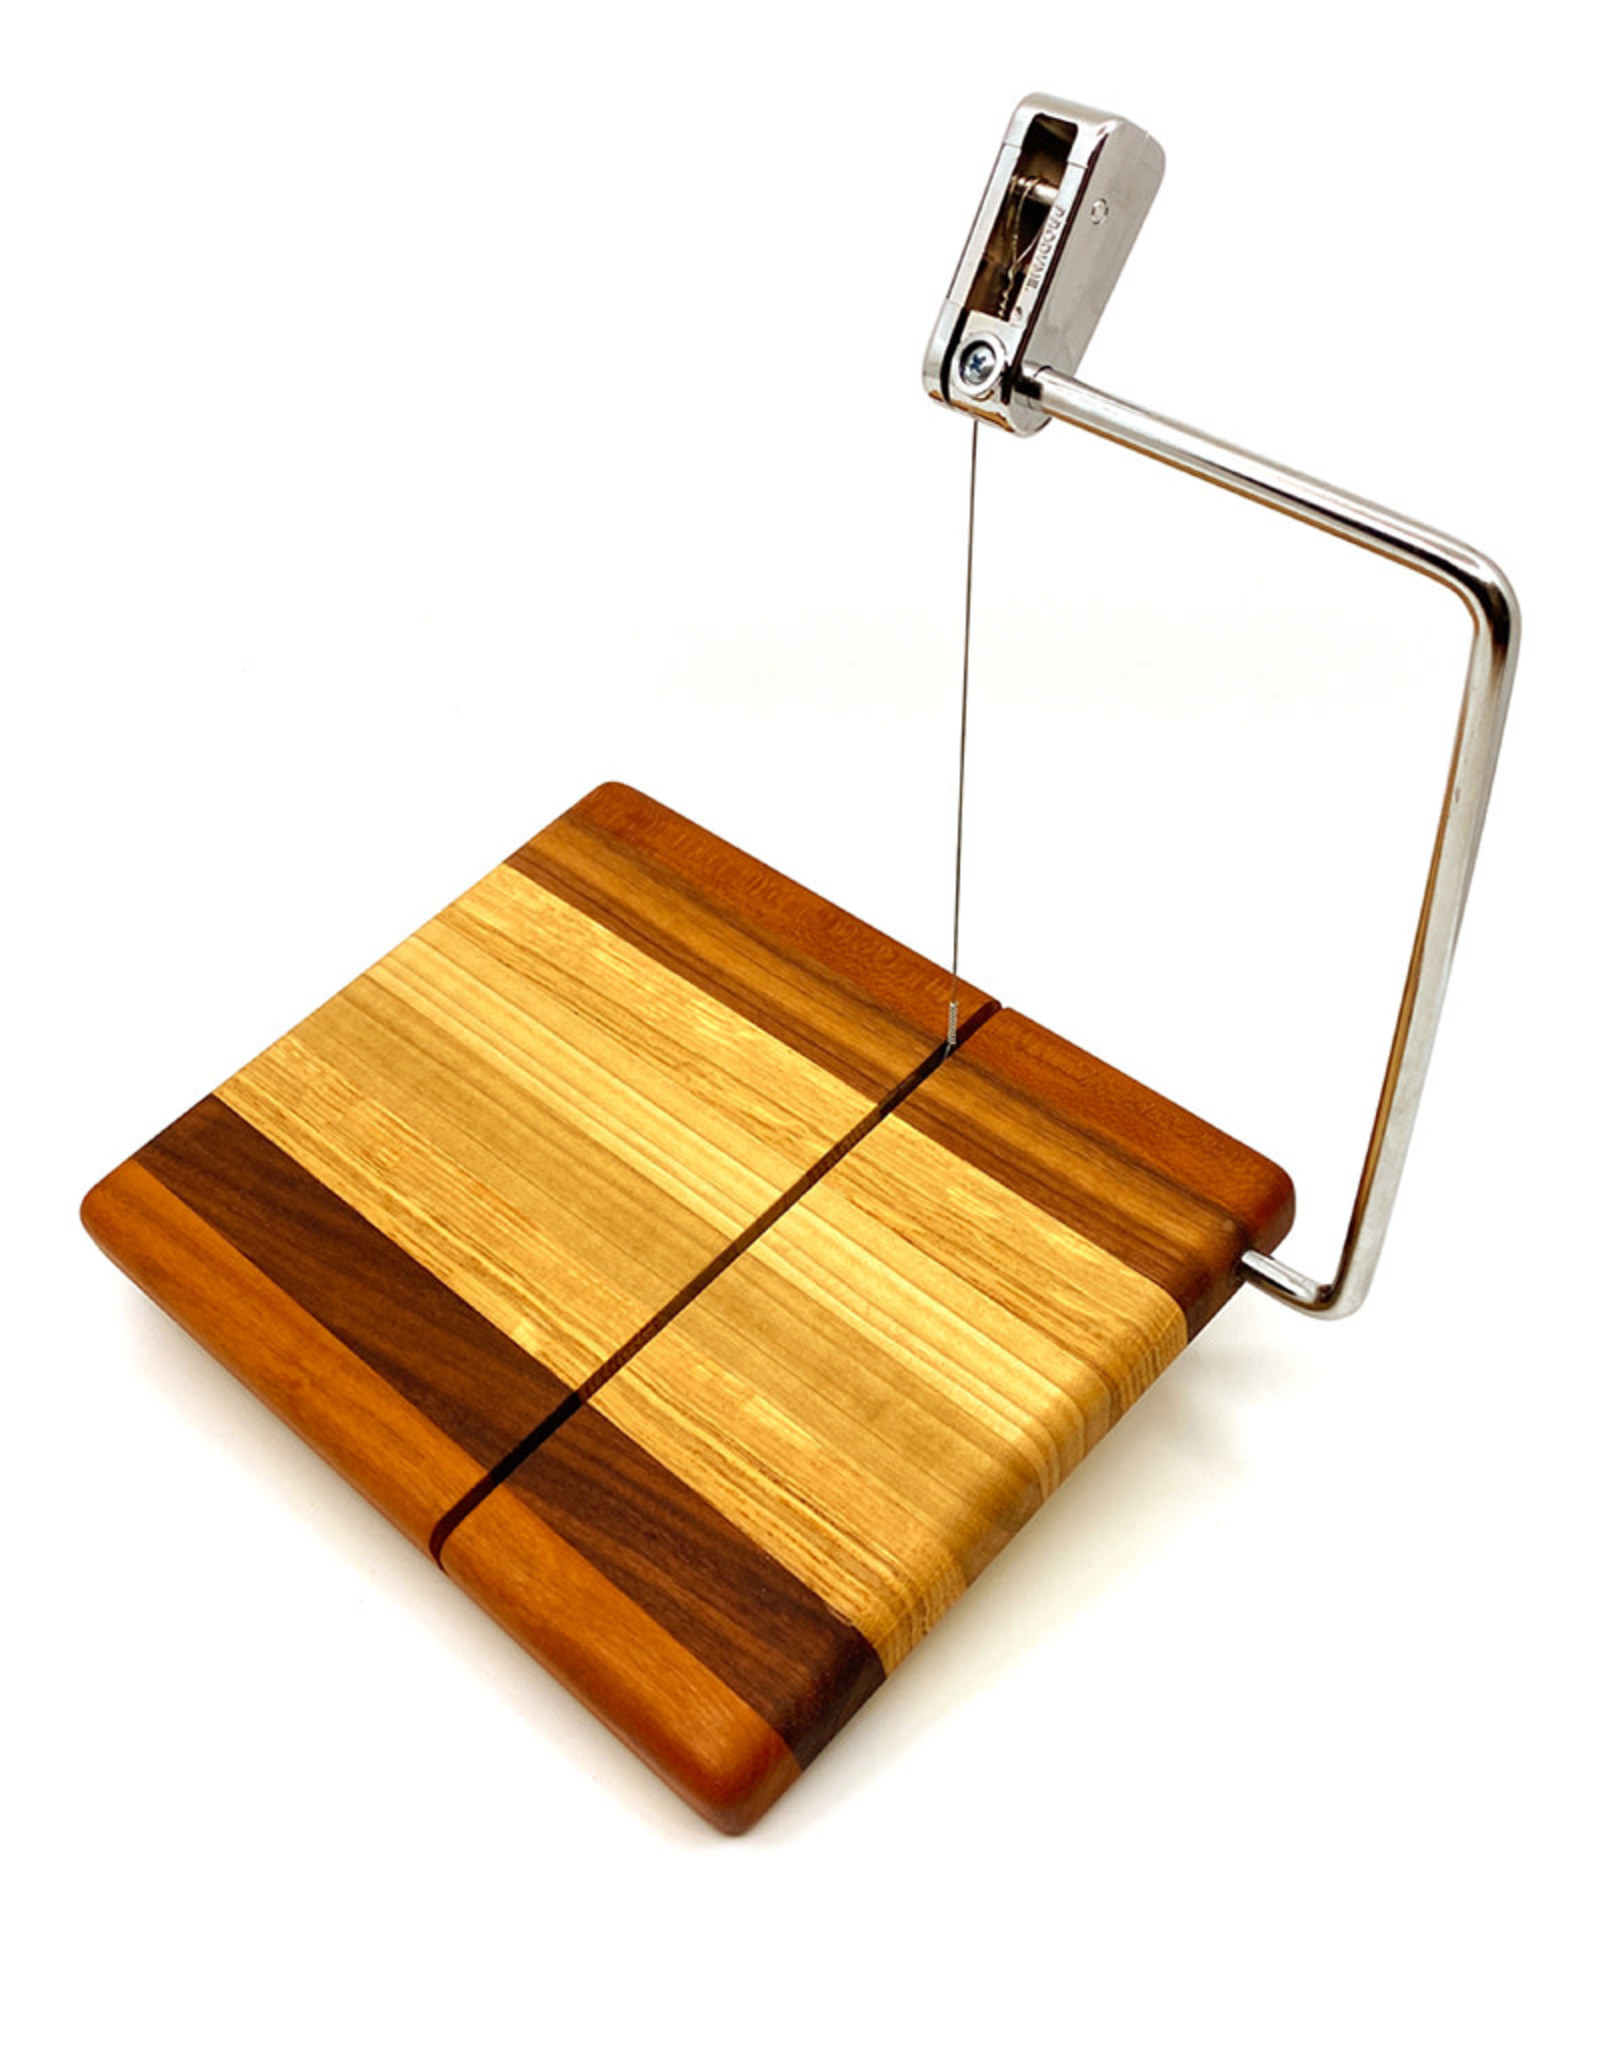 DICKINSON WOODWORKING SHORT WIRE CHEESE BOARD